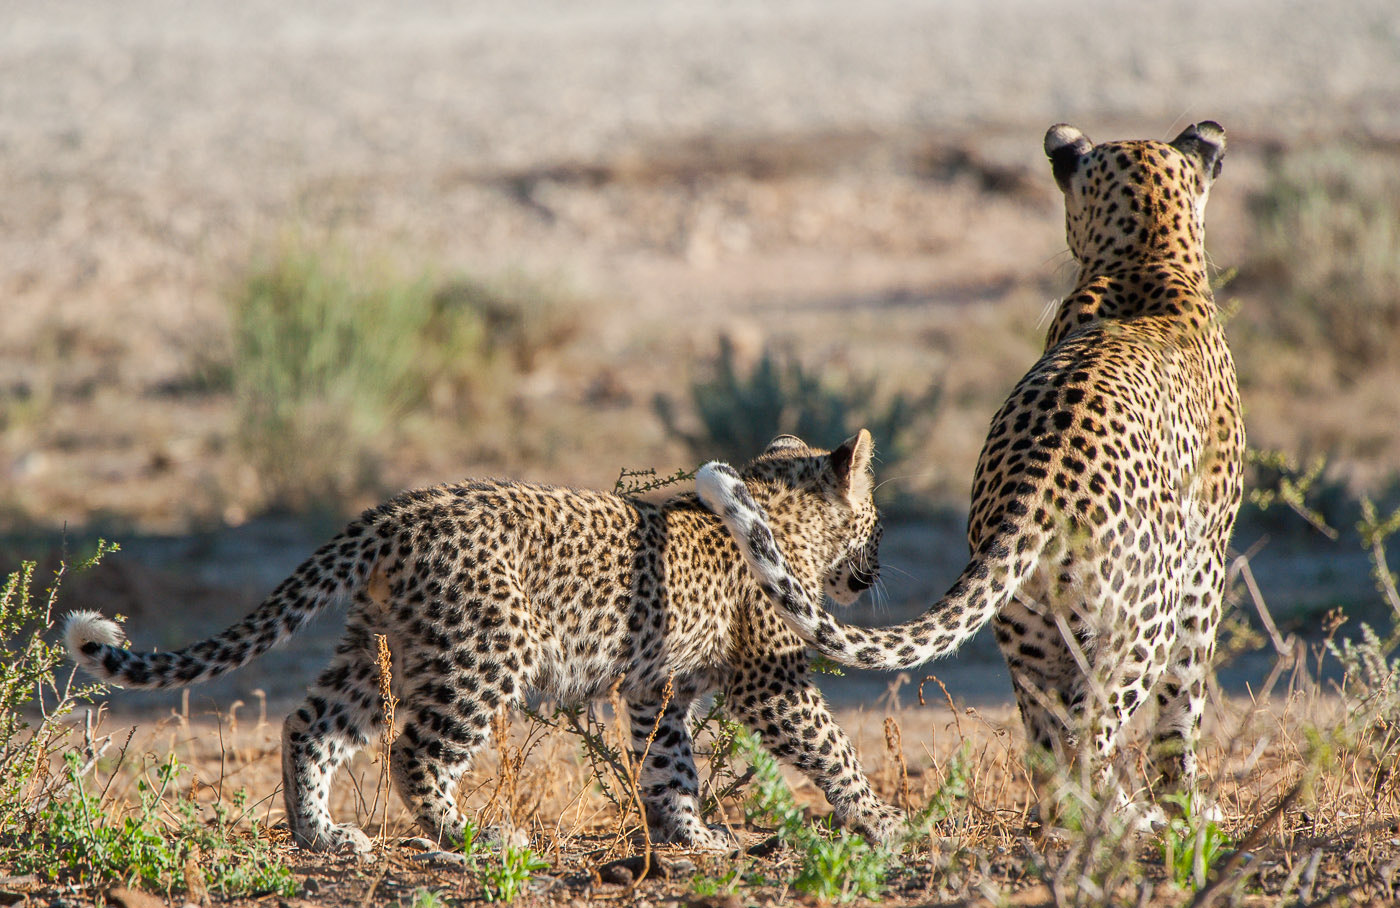 Photograph Mothers touch by Bridgena Barnard on 500px